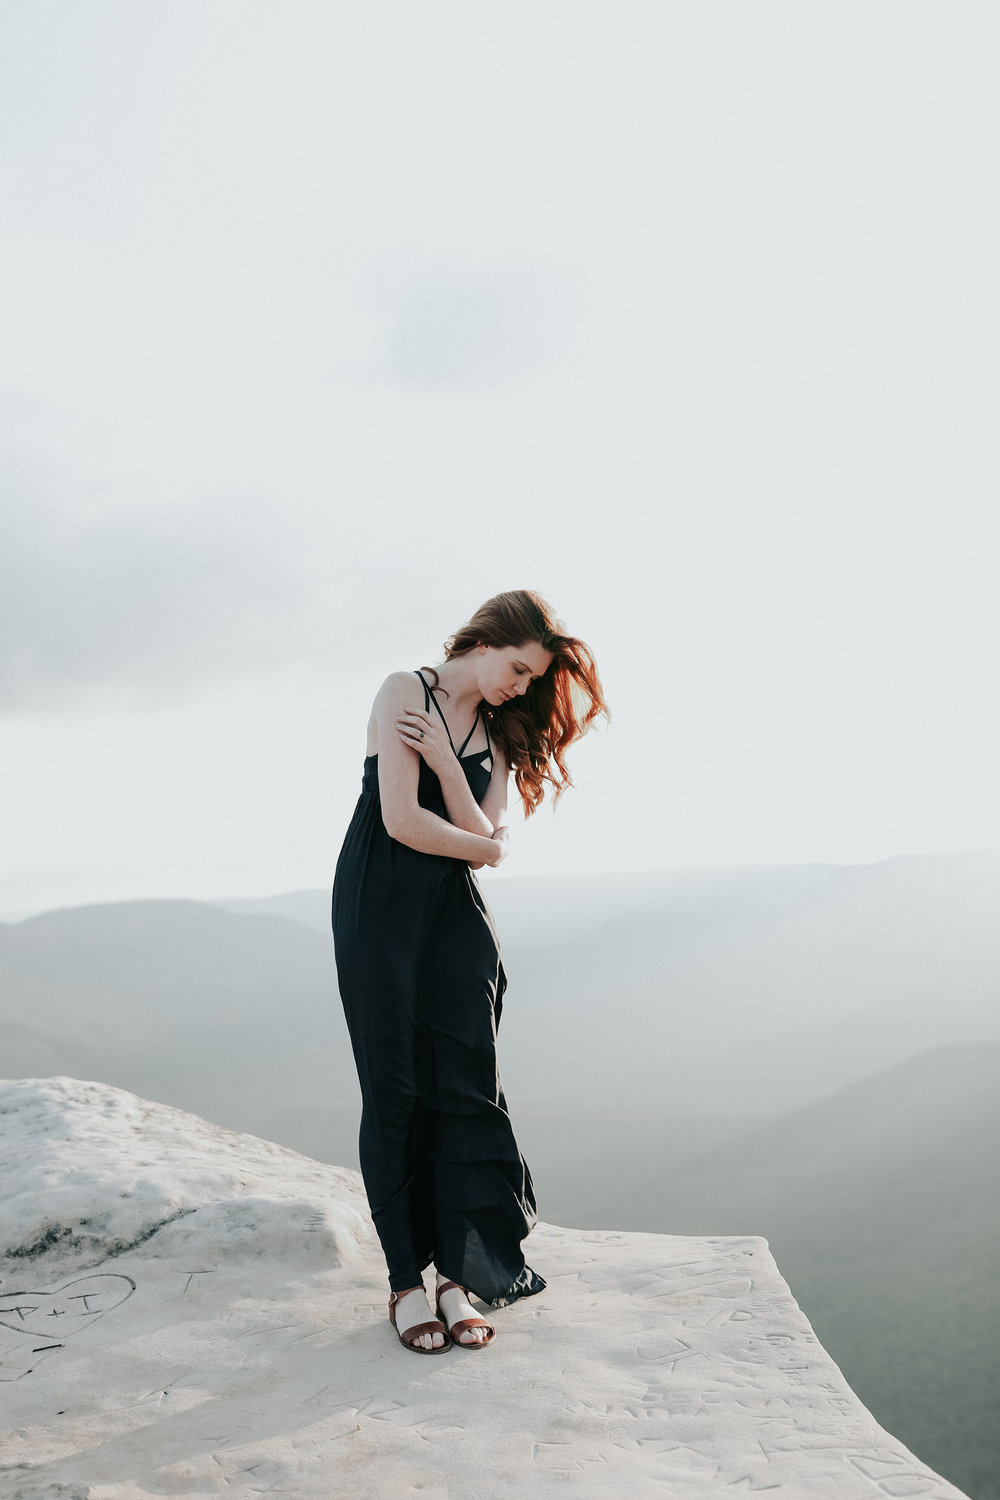 Blue Mountains Wedding and Portrait Photography Jenny Wu Straight No Chaser